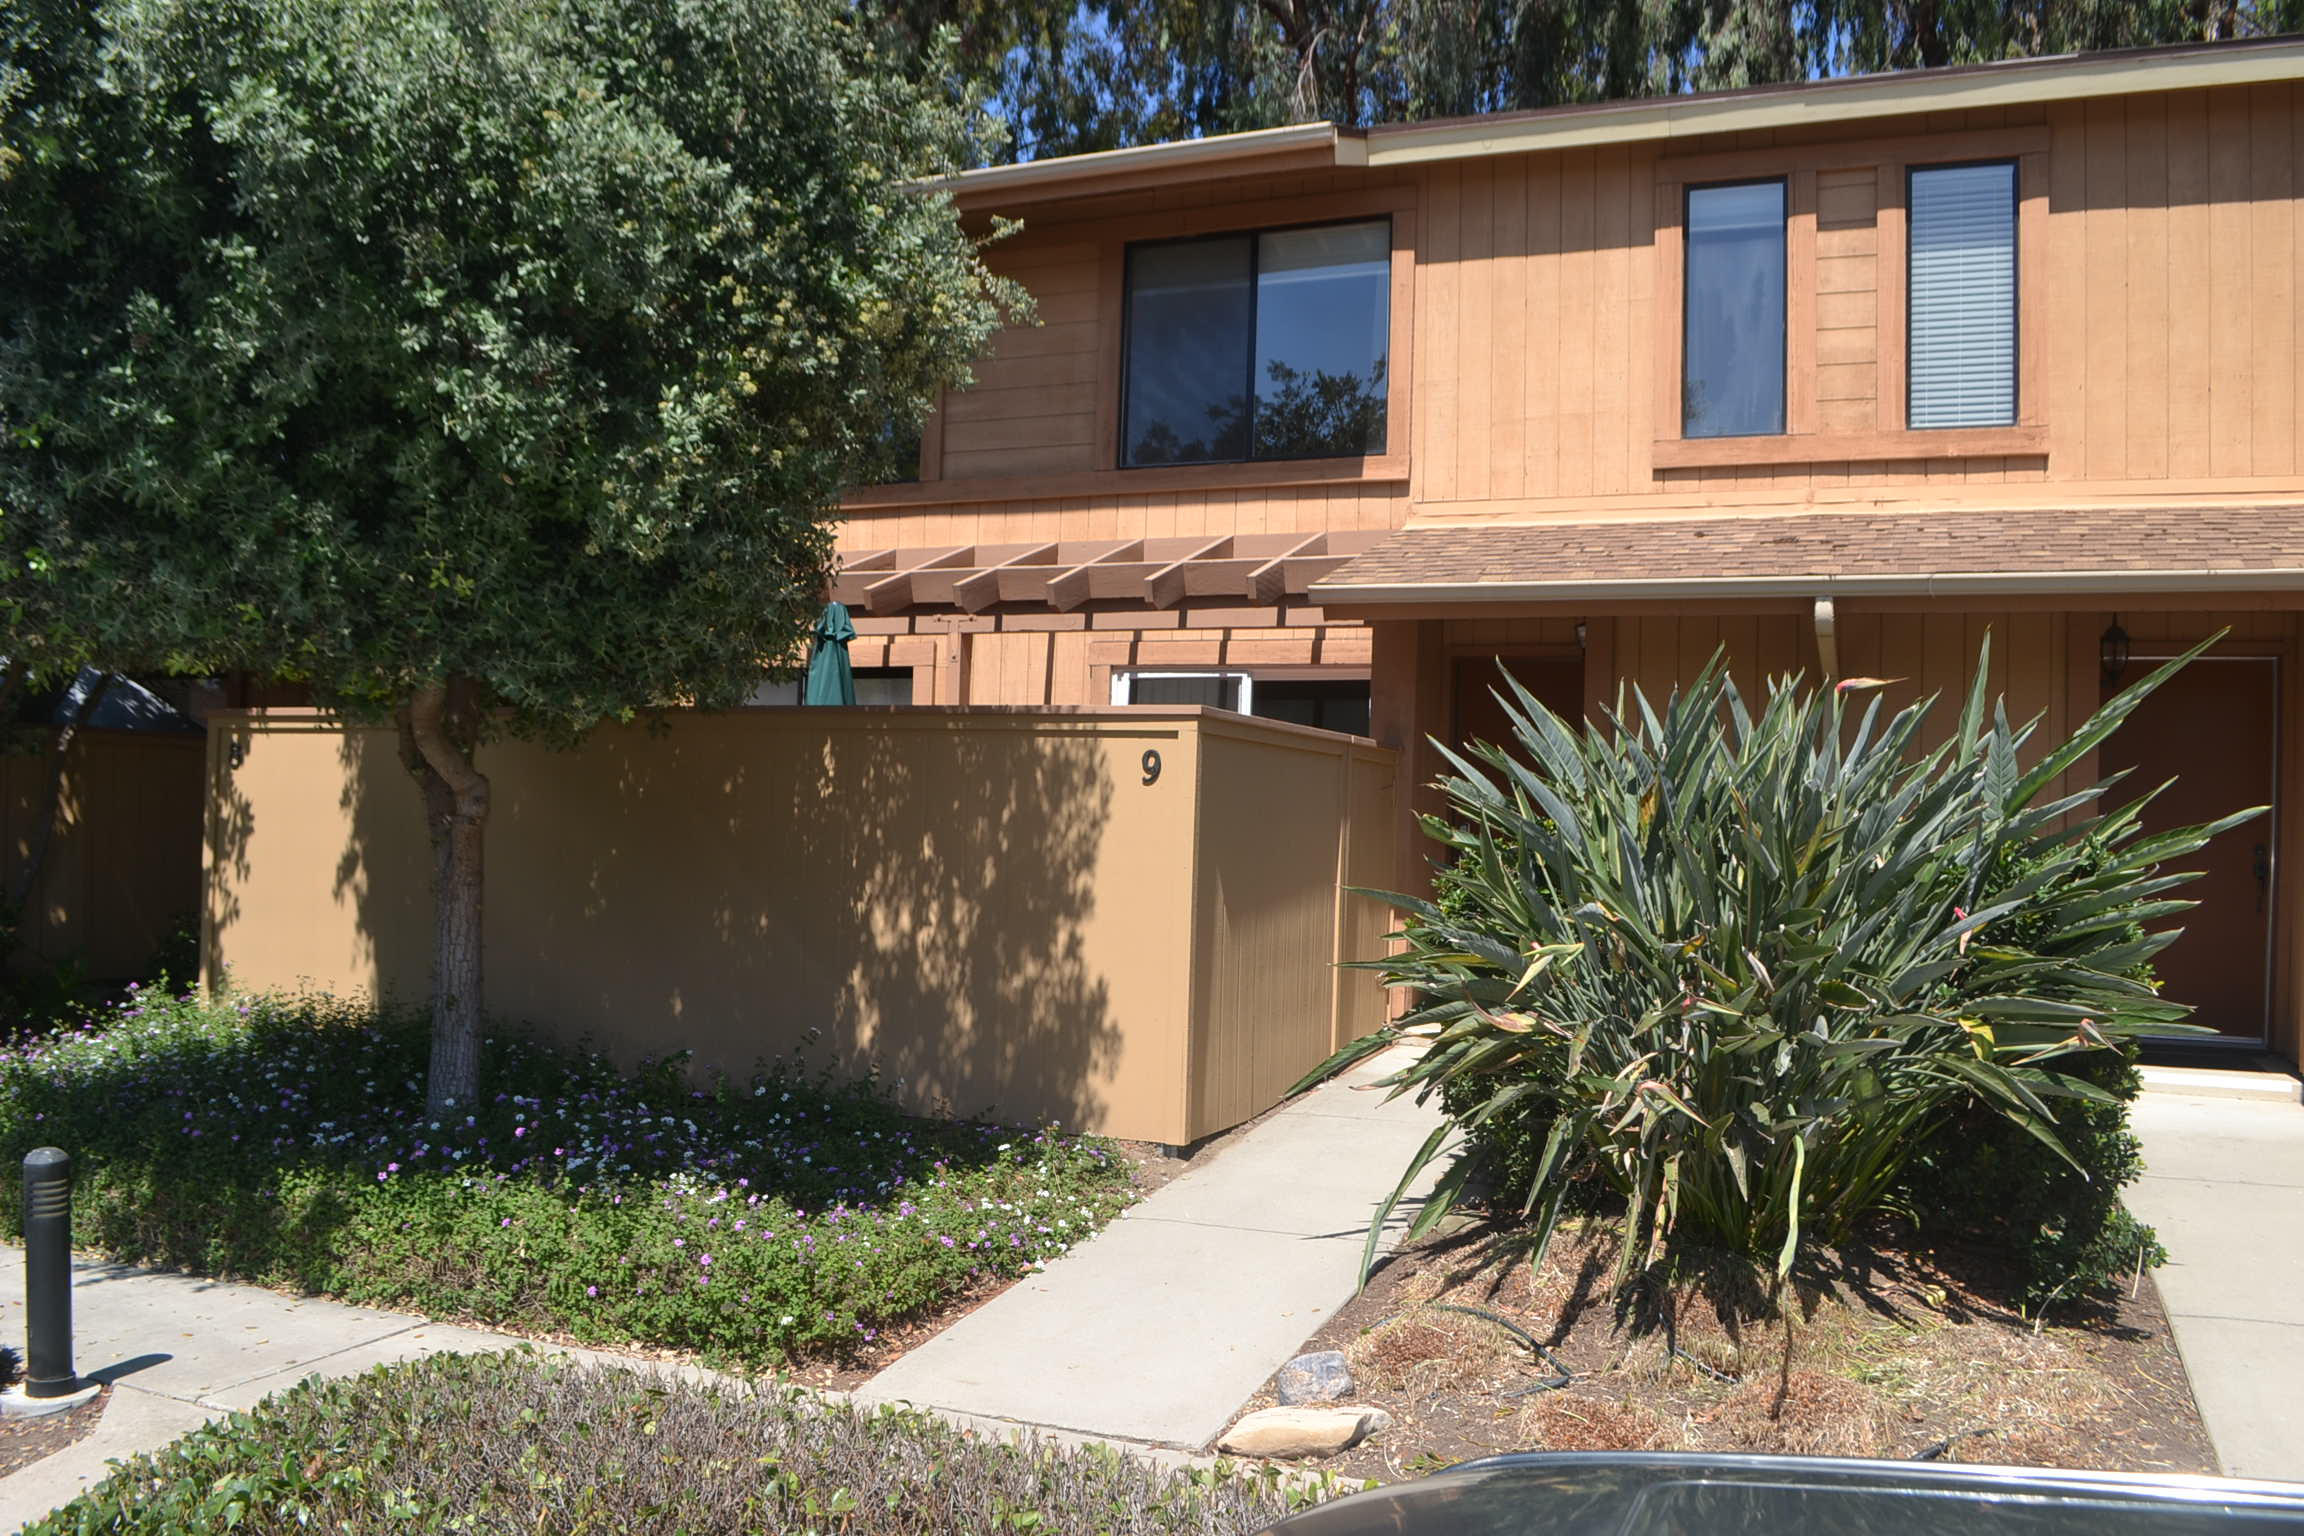 Property photo for 5290 Overpass Rd #9 Santa Barbara, California 93111 - 13-2523